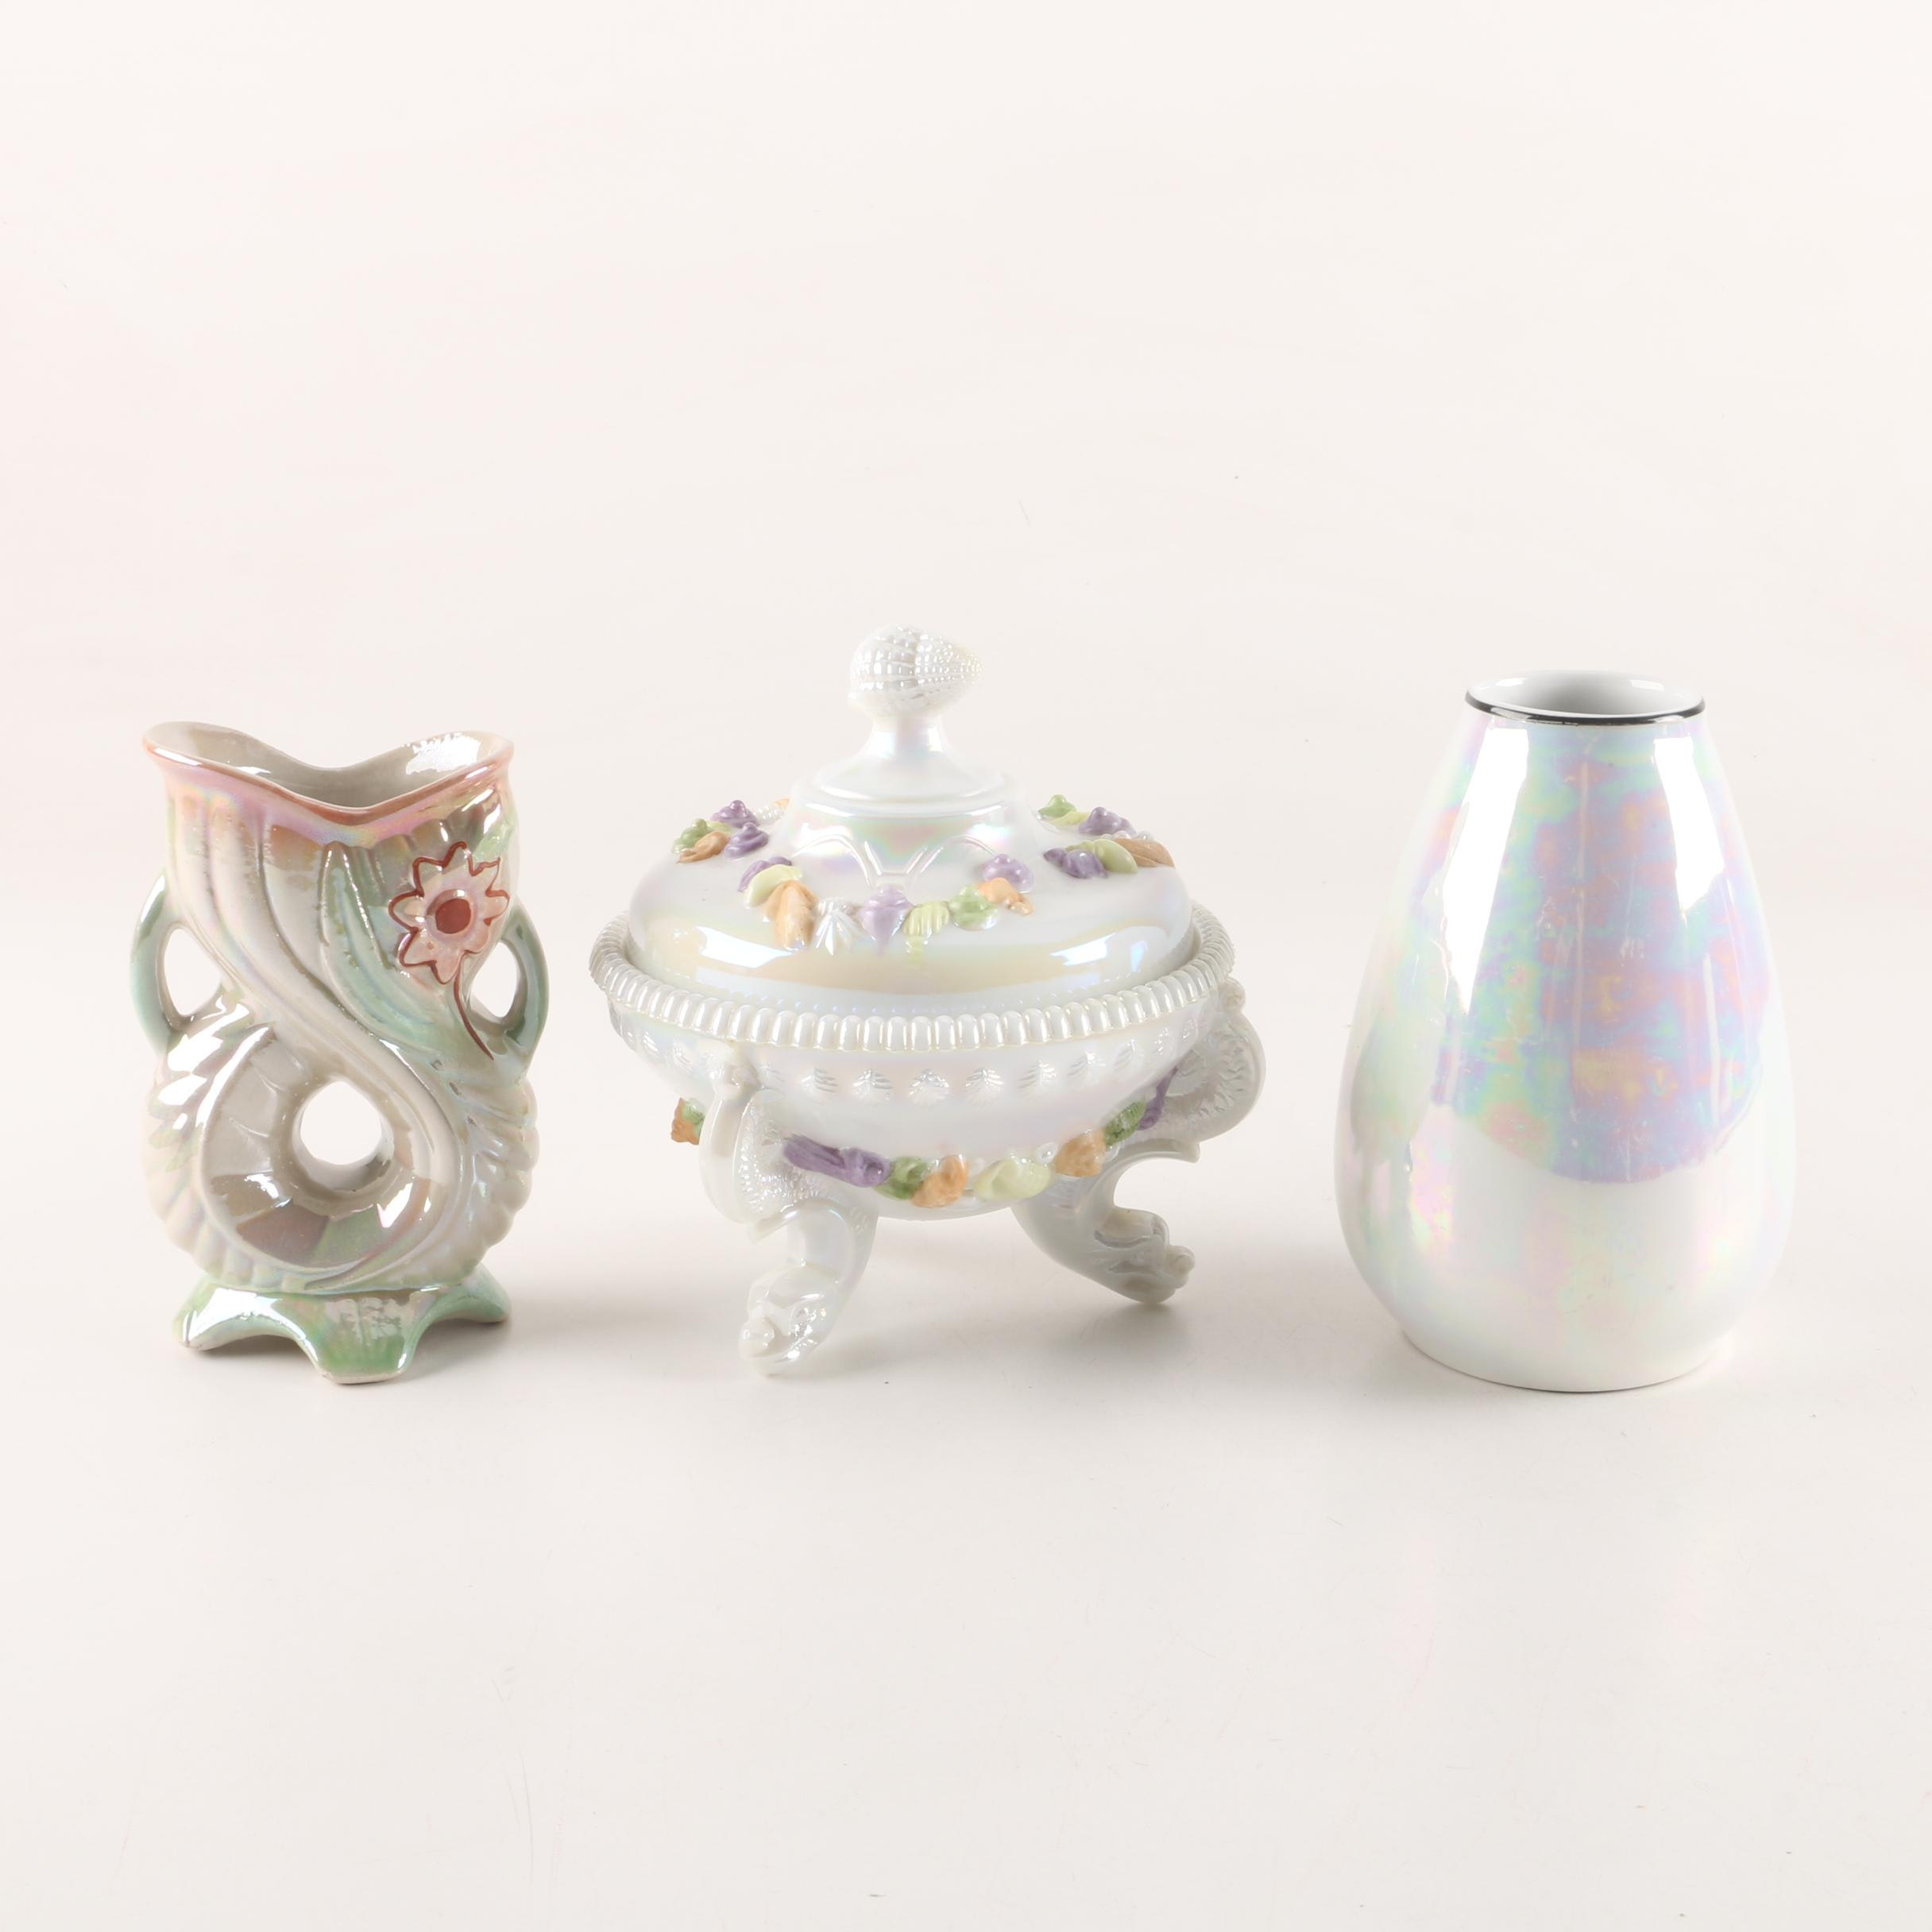 Vintage Argonaut with Pastel Shells Covered Compote and Lustreware Vases